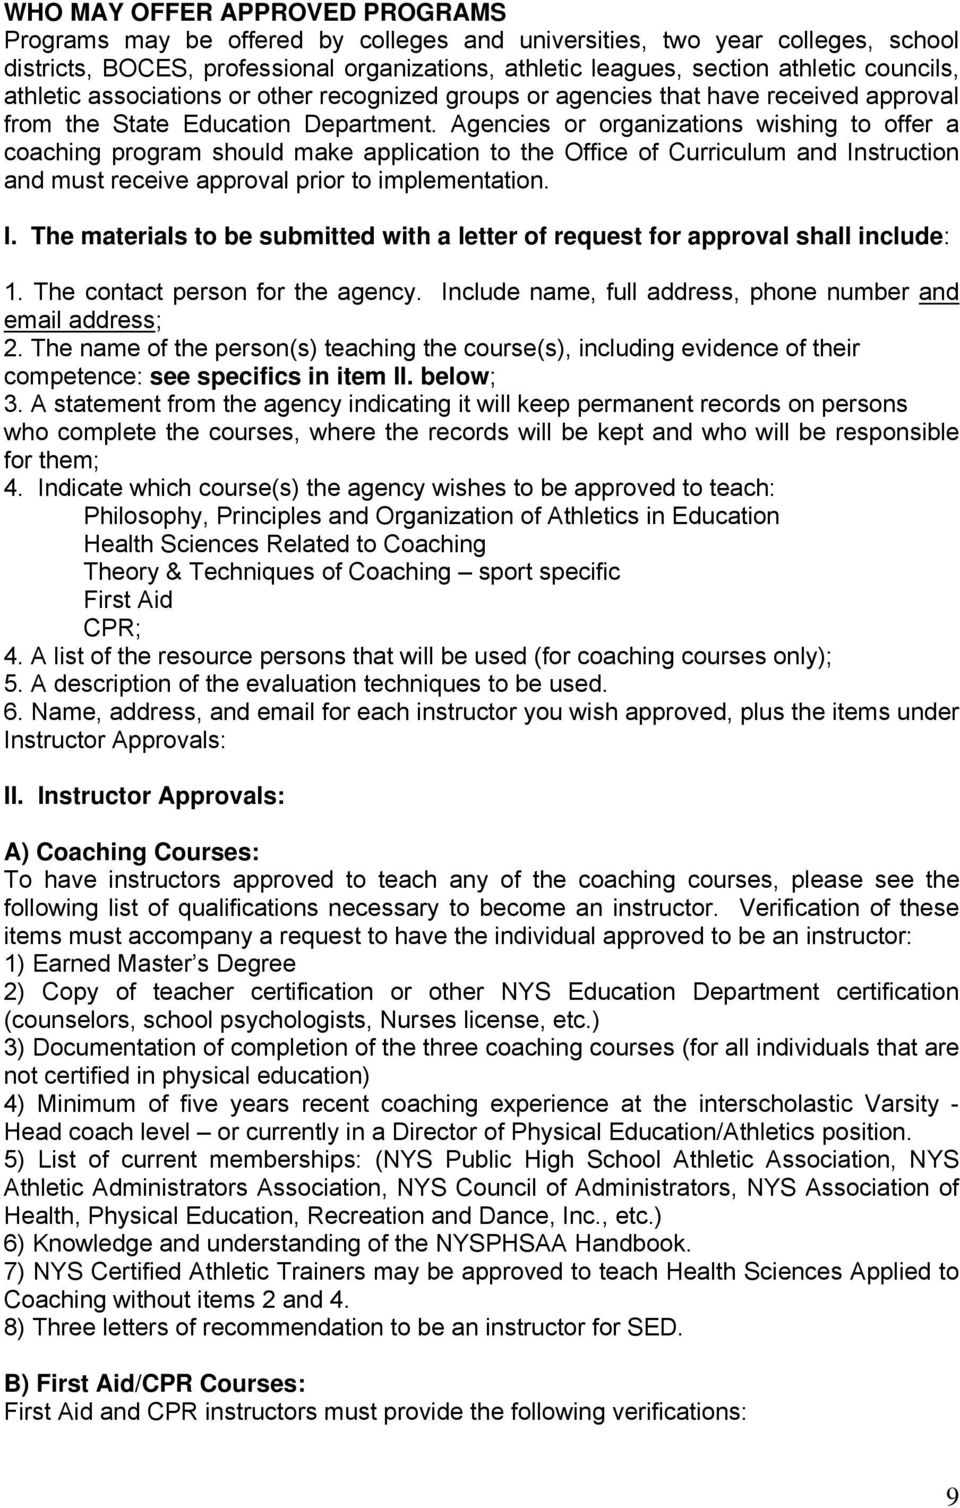 Agencies or organizations wishing to offer a coaching program should make application to the Office of Curriculum and In